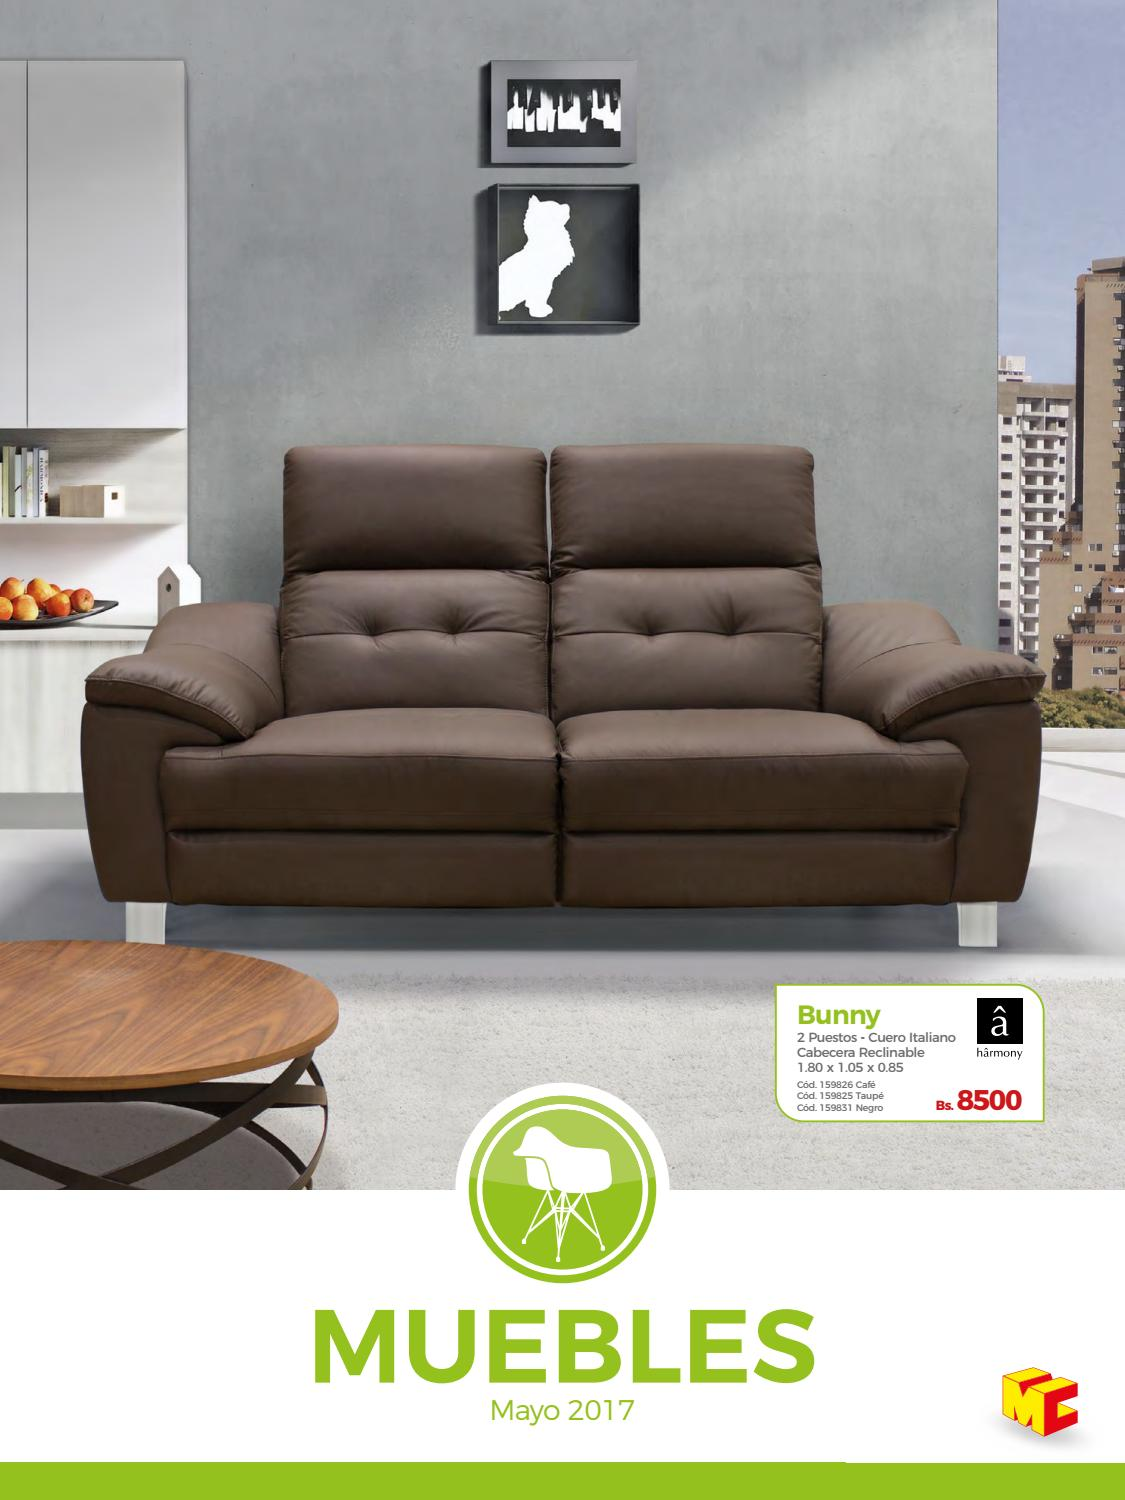 Cat logo muebles mayo 2017 multicenter by multicenter bolivia issuu - Kitea muebles lanzarote catalogo ...